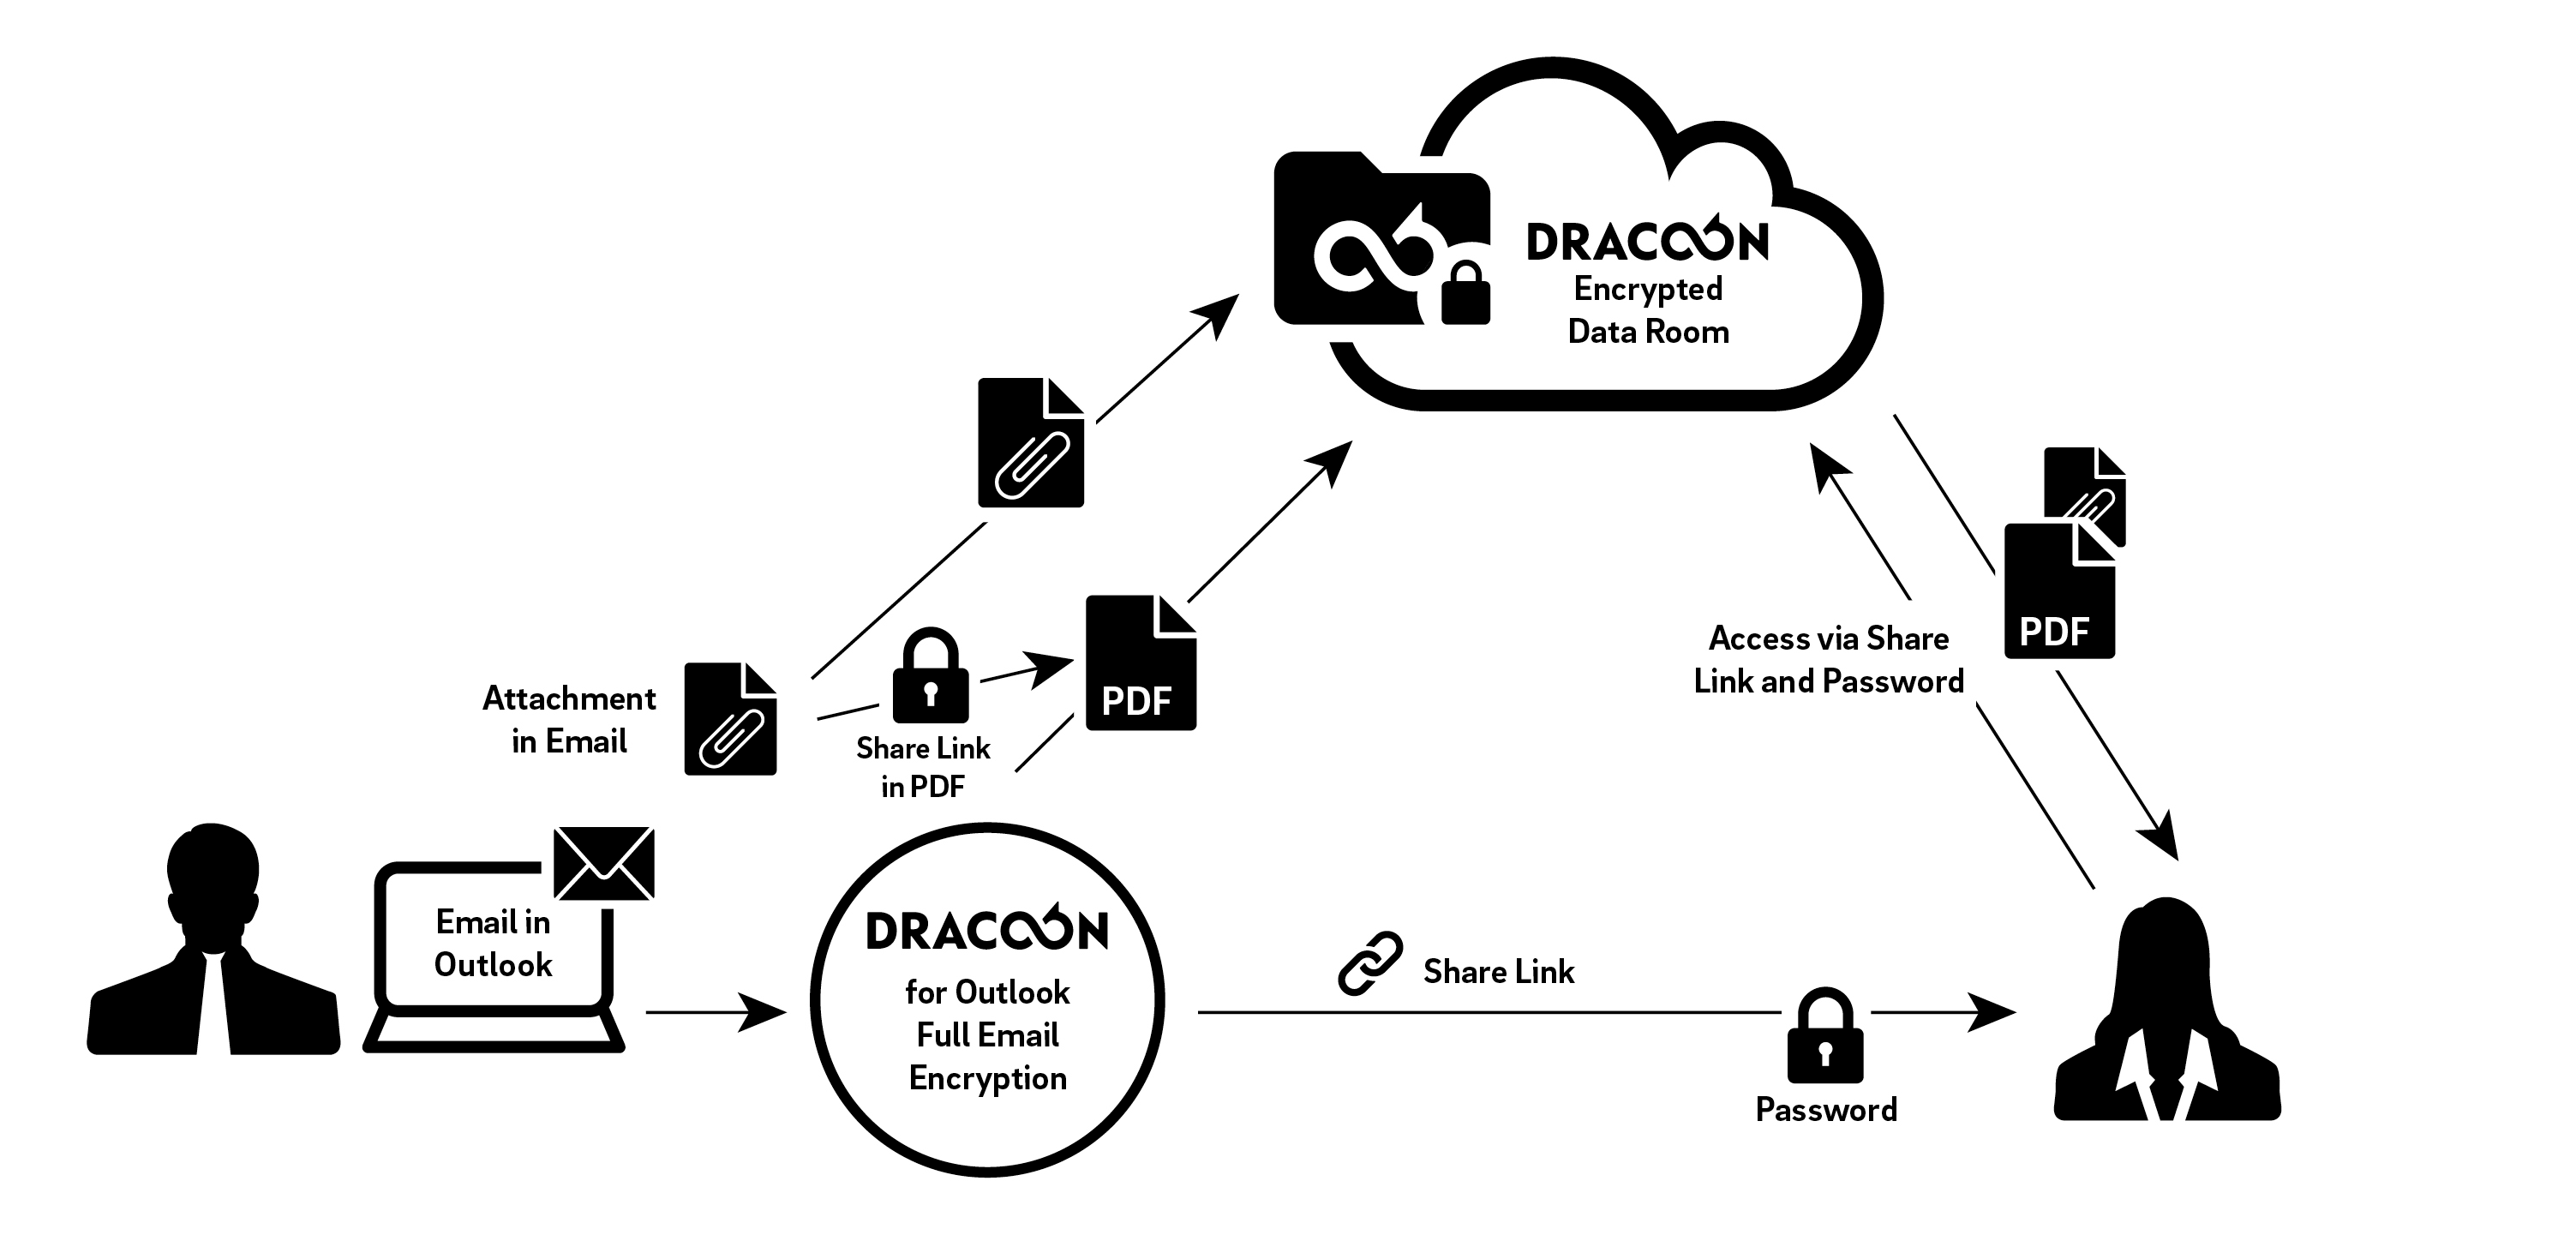 Full email encryption with DRACOON for Outlook